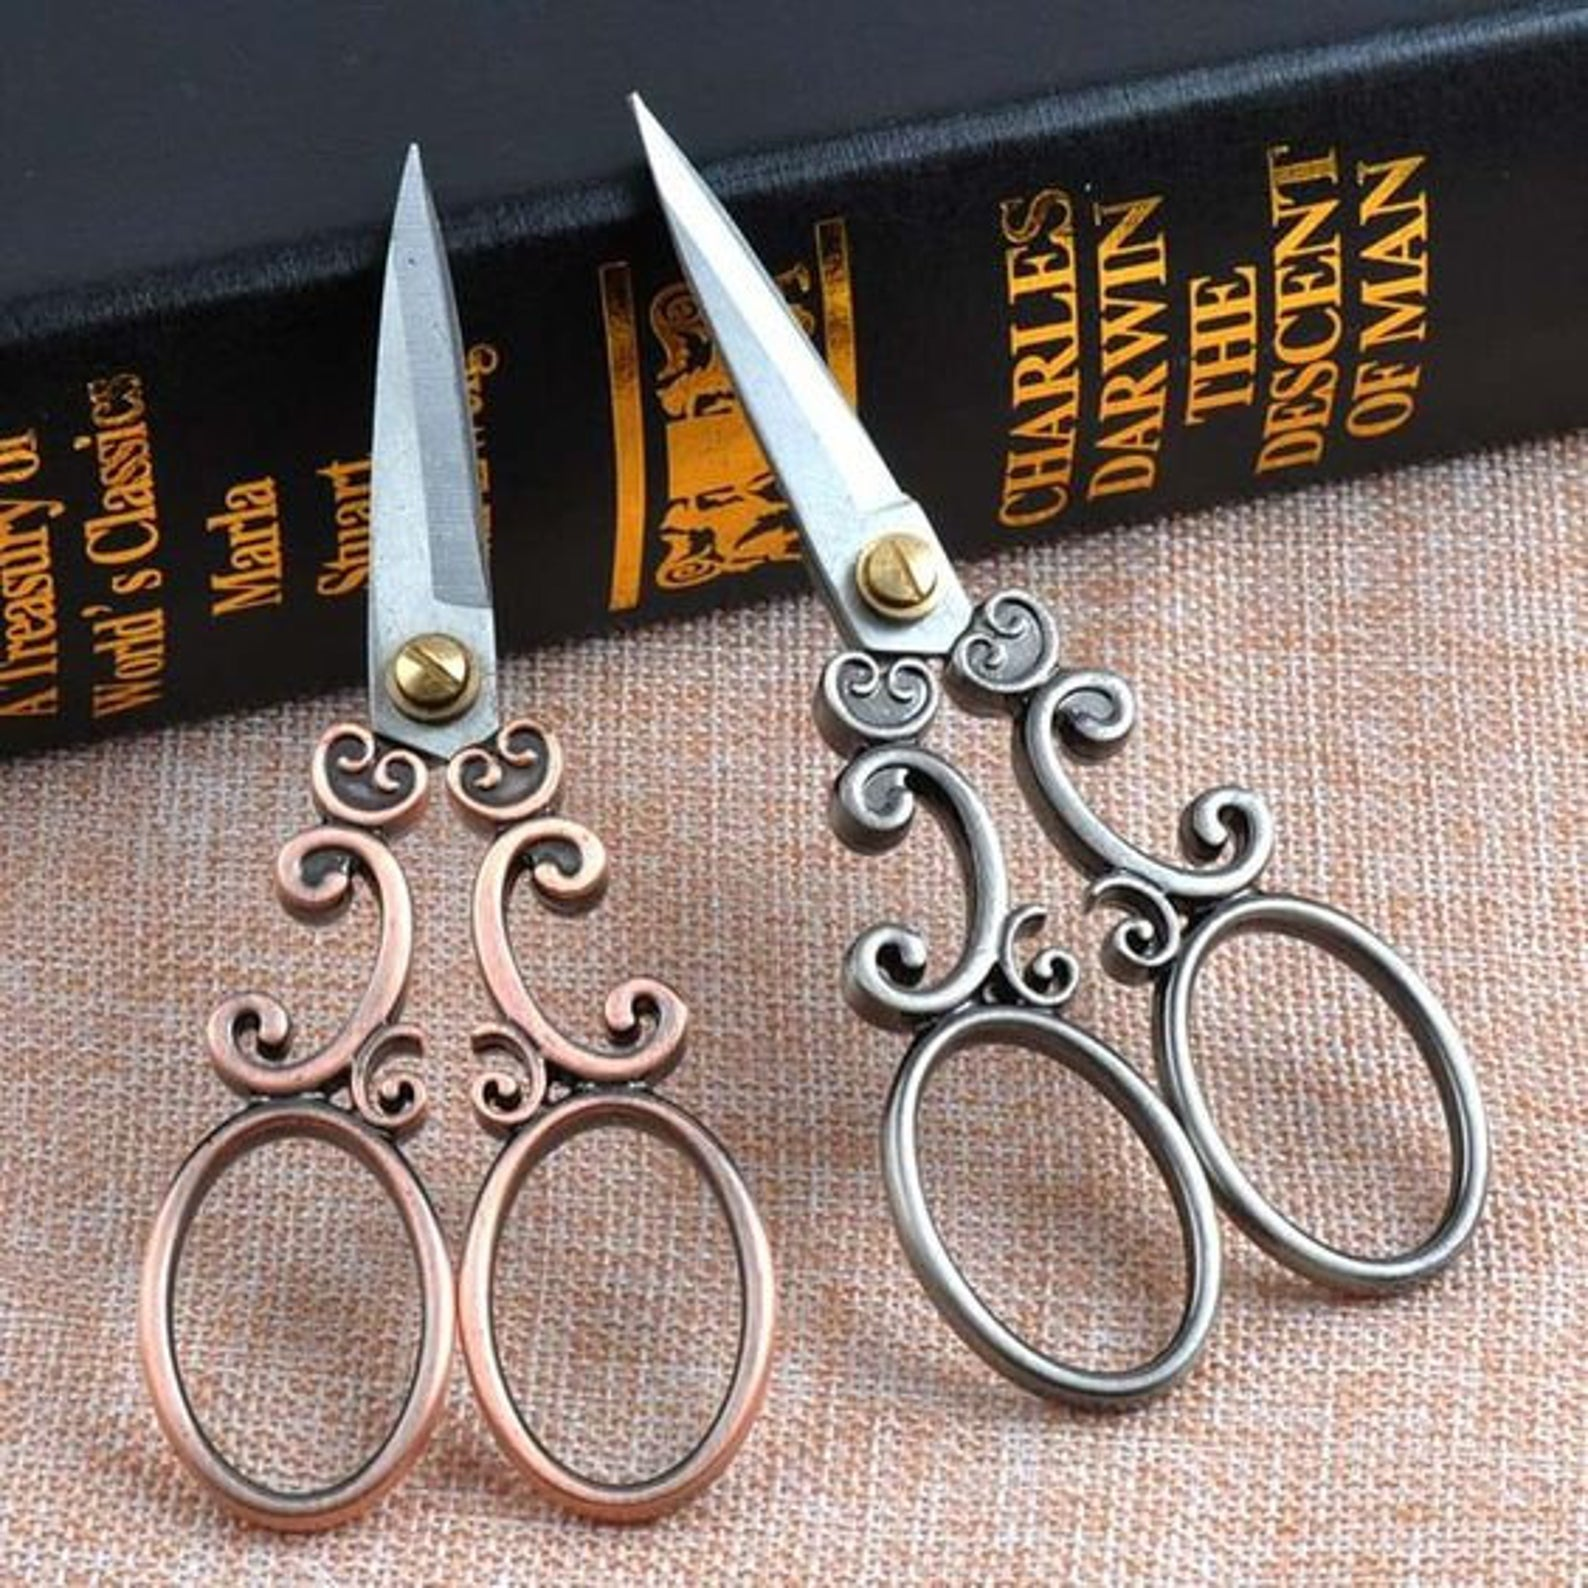 filigree fancy embroidery scissors